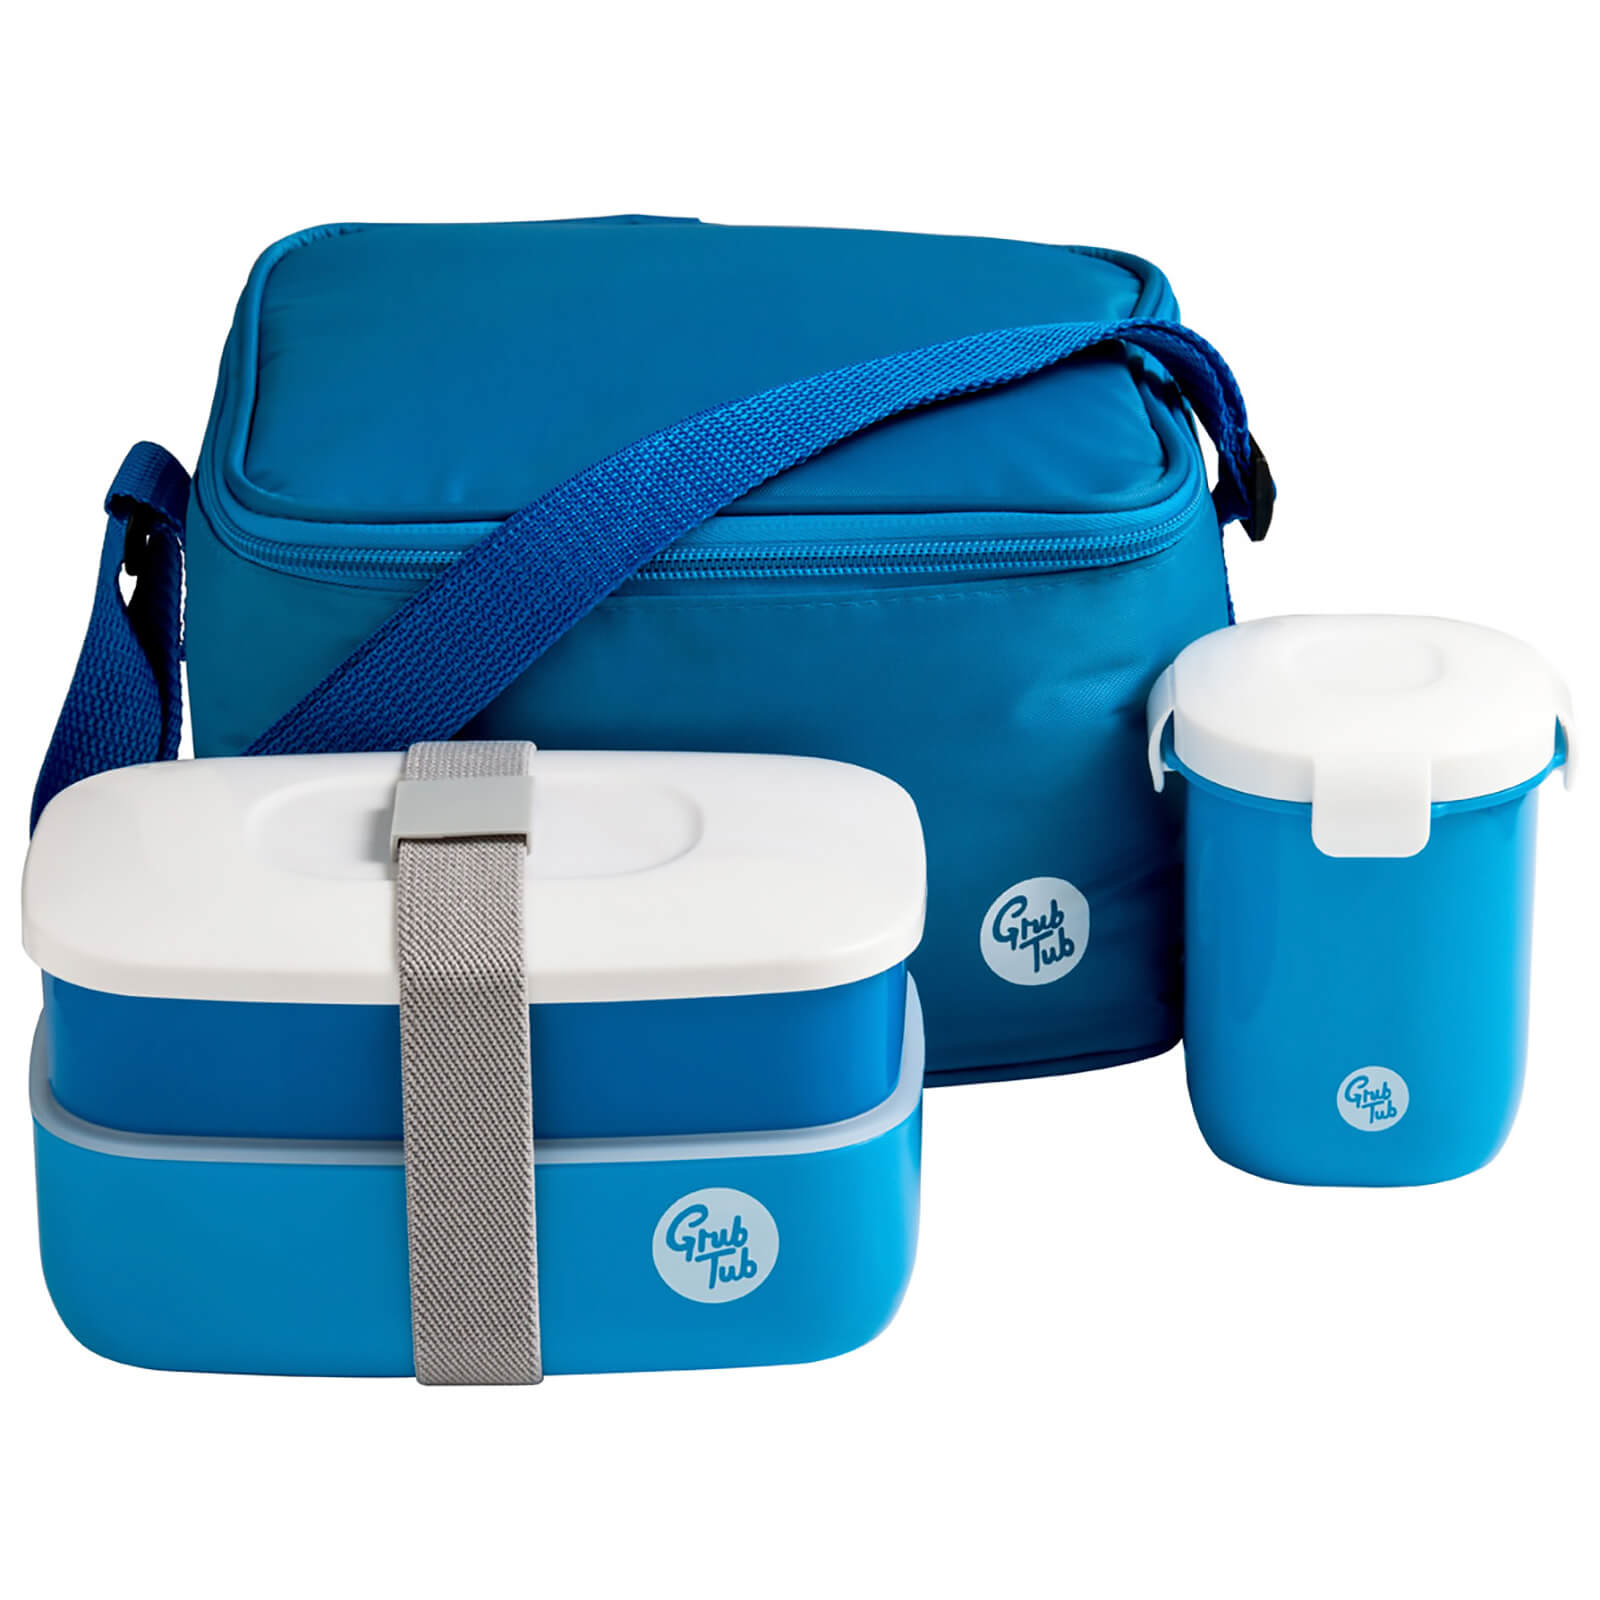 Grub Tub Lunch Box with Cool Bag and Sealing Cup - Blue